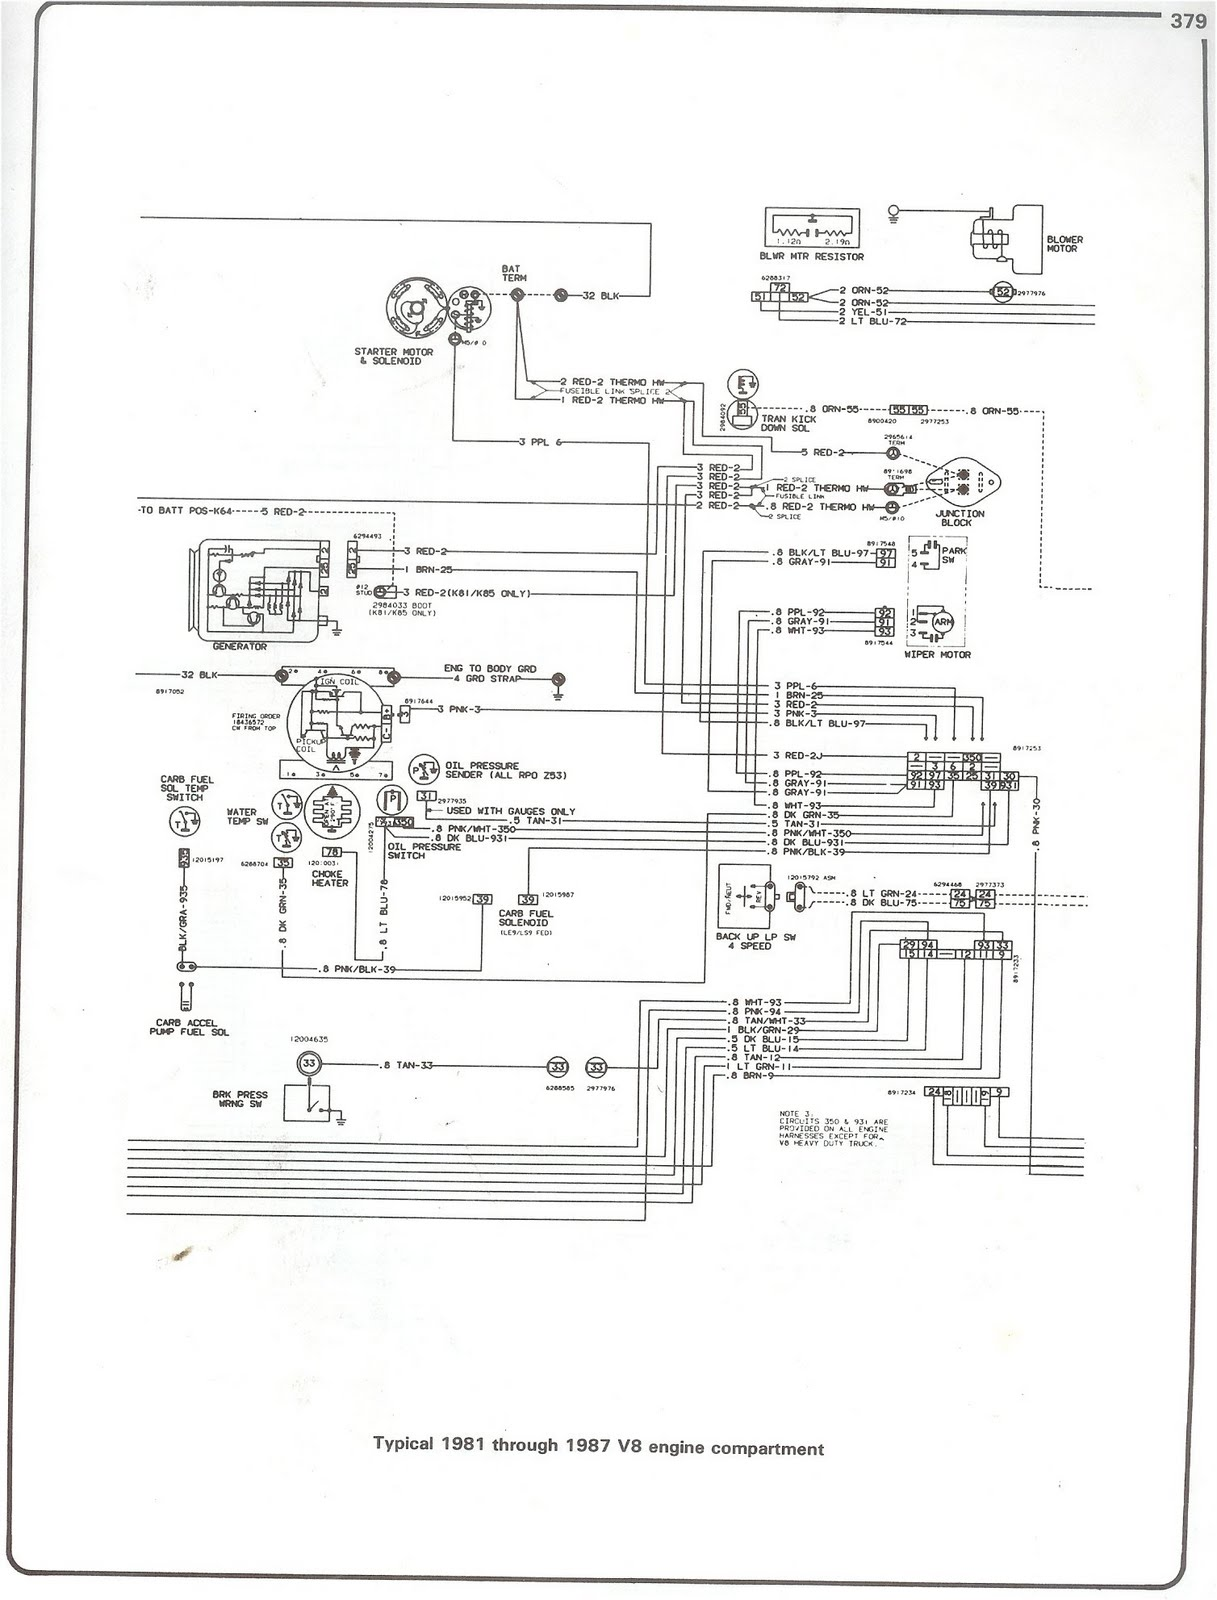 small resolution of 1978 chevy truck wiring harness data diagram schematic 1978 chevy truck wiring harness